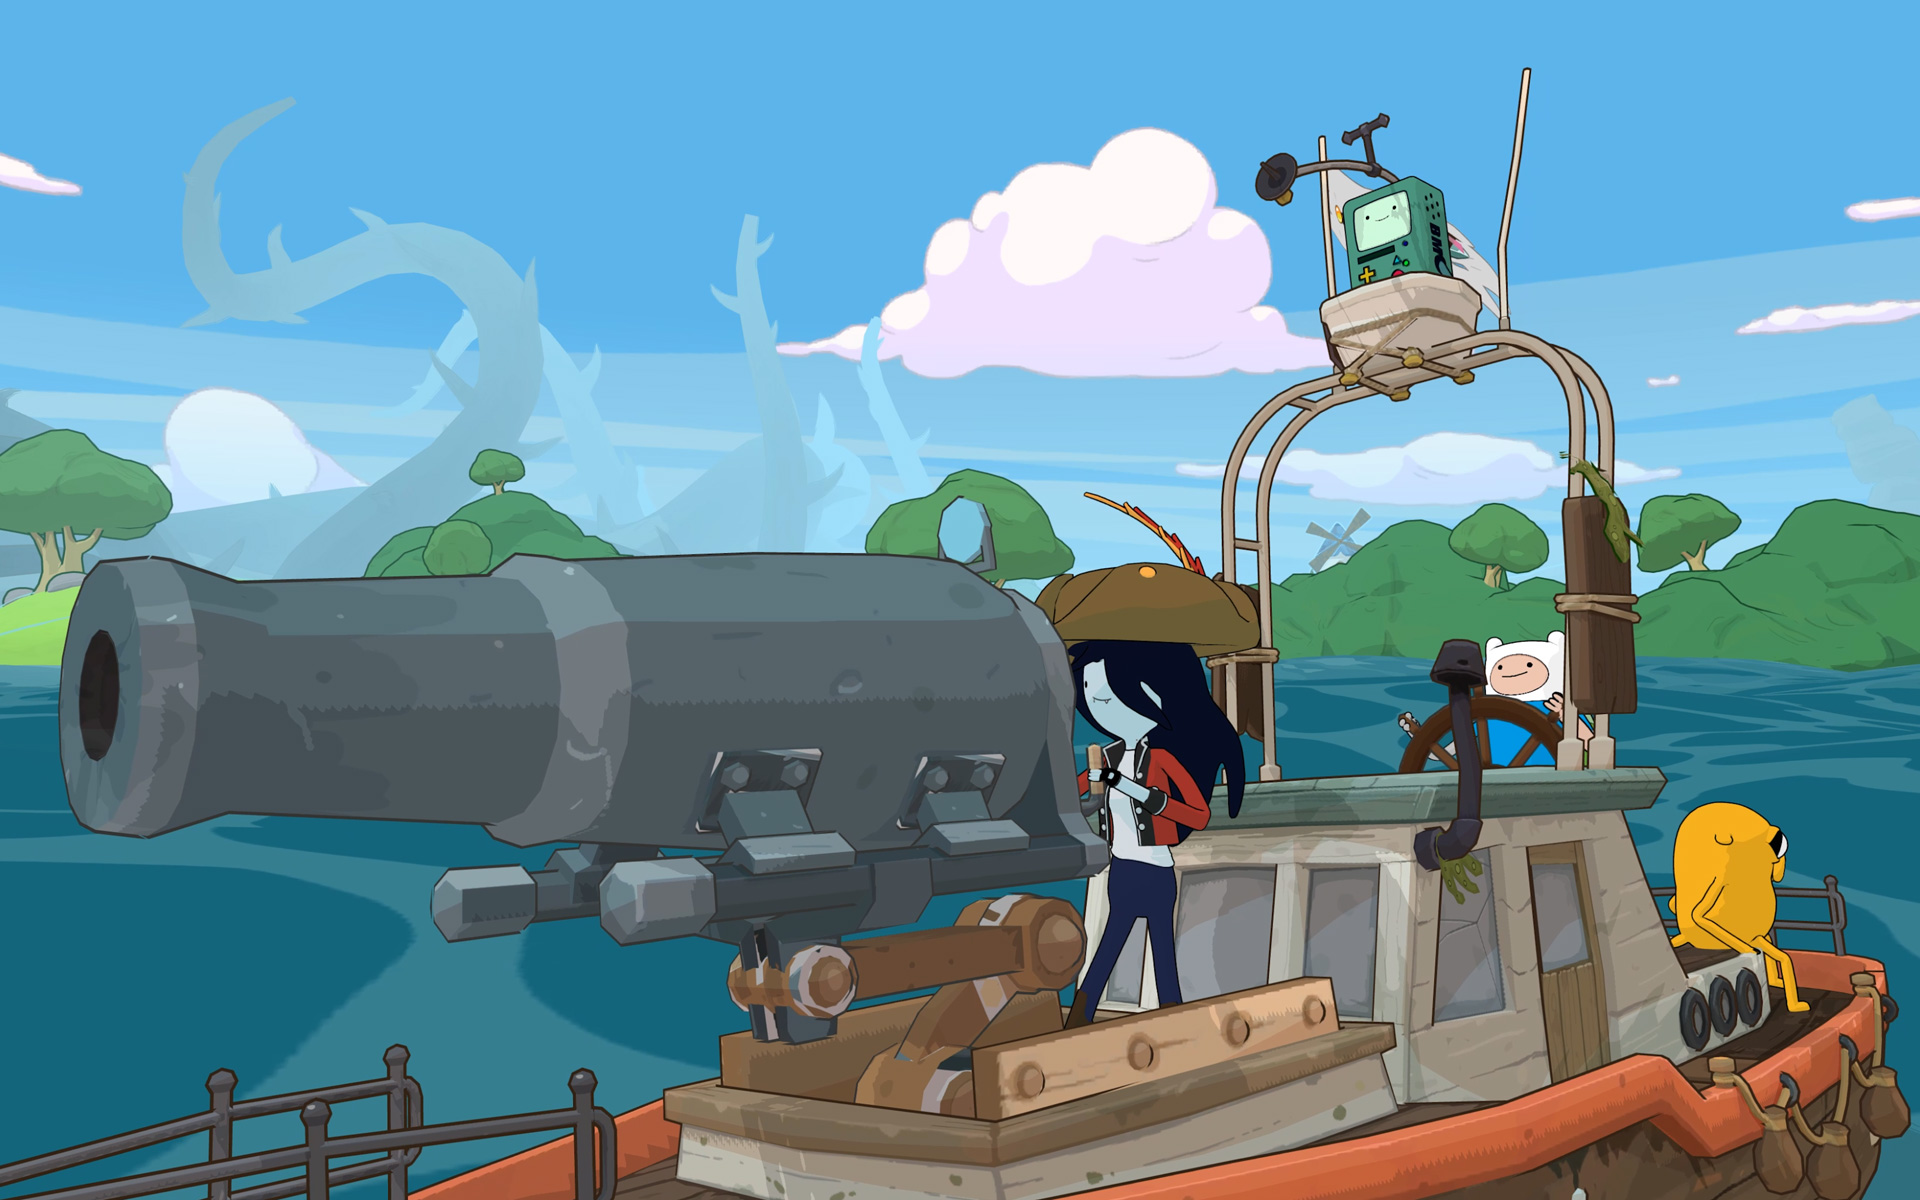 Free Adventure Time: Pirates of the Enchiridion Wallpaper in 1920x1200